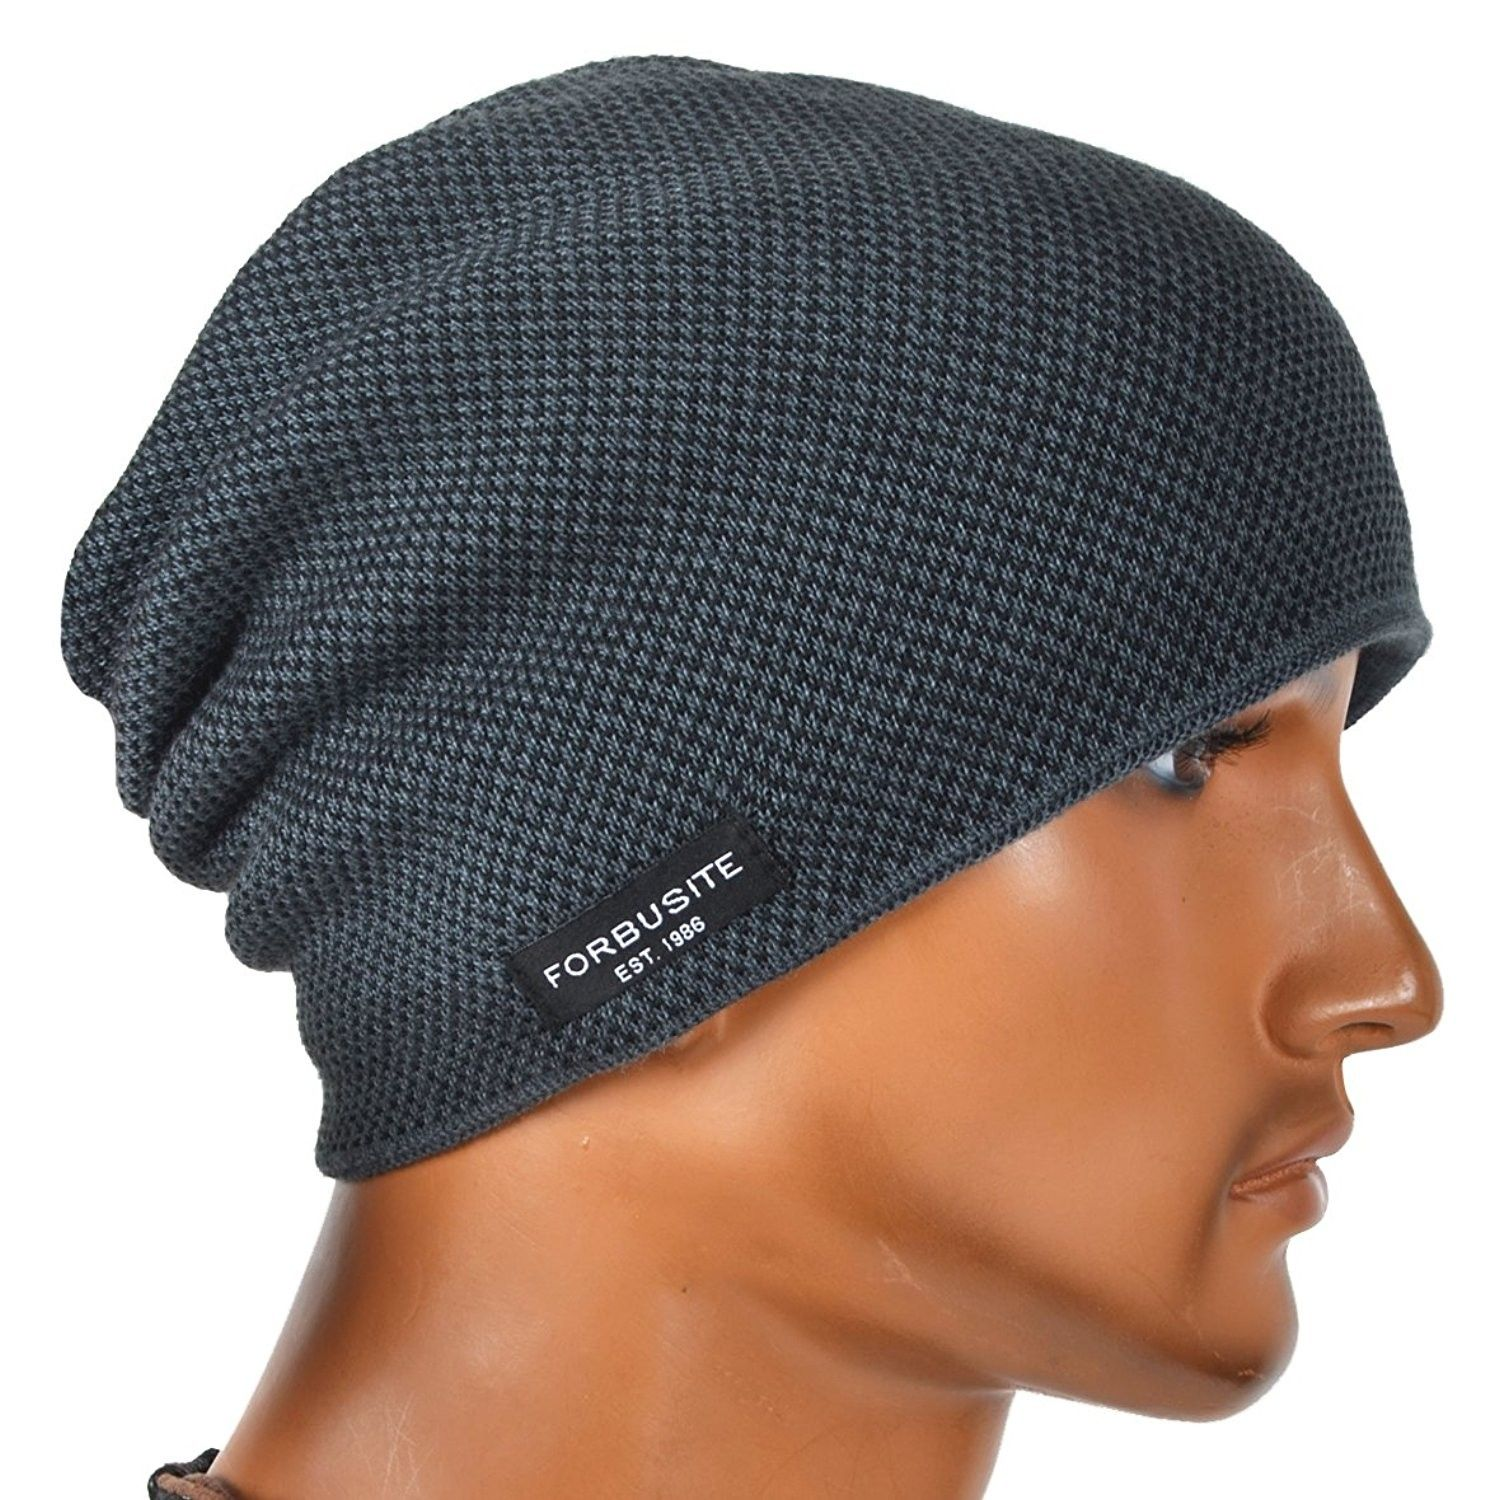 147bb93aca0 Mens Beanie Hat Fleece Lined Knit Hat Thick Skull Cap - Grey - CH187DGMGY0  - Hats   Caps